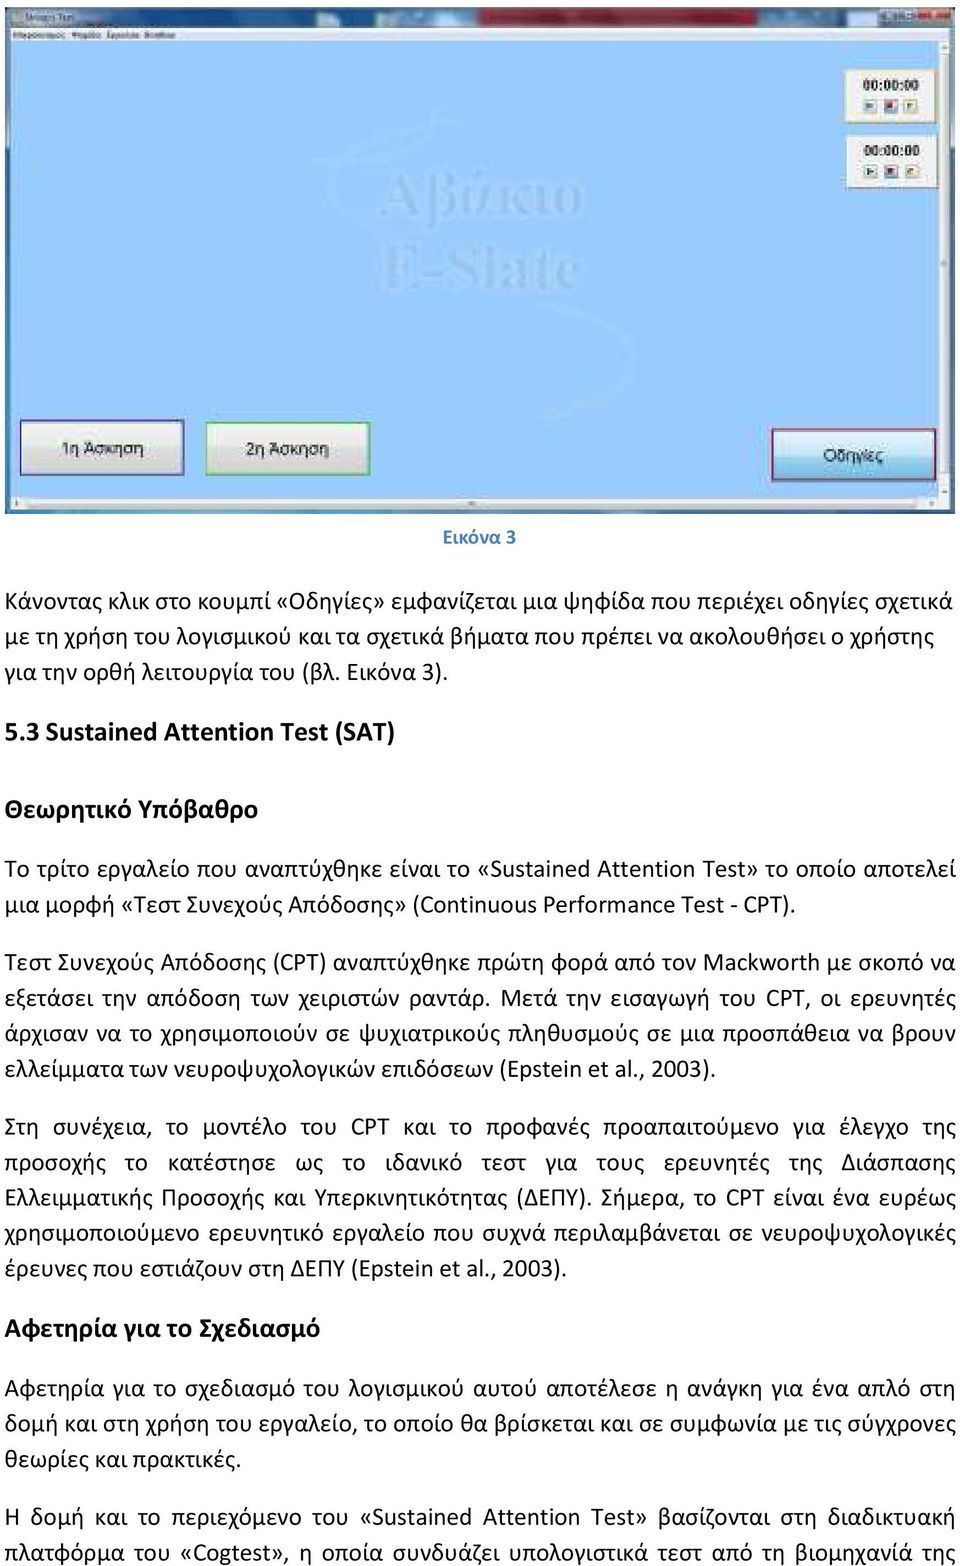 3 Sustained Attention Test (SAT) Θεωρητικό Υπόβαθρο Το τρίτο εργαλείο που αναπτύχθηκε είναι το «Sustained Attention Test» το οποίο αποτελεί μια μορφή «Τεστ Συνεχούς Απόδοσης» (Continuous Performance